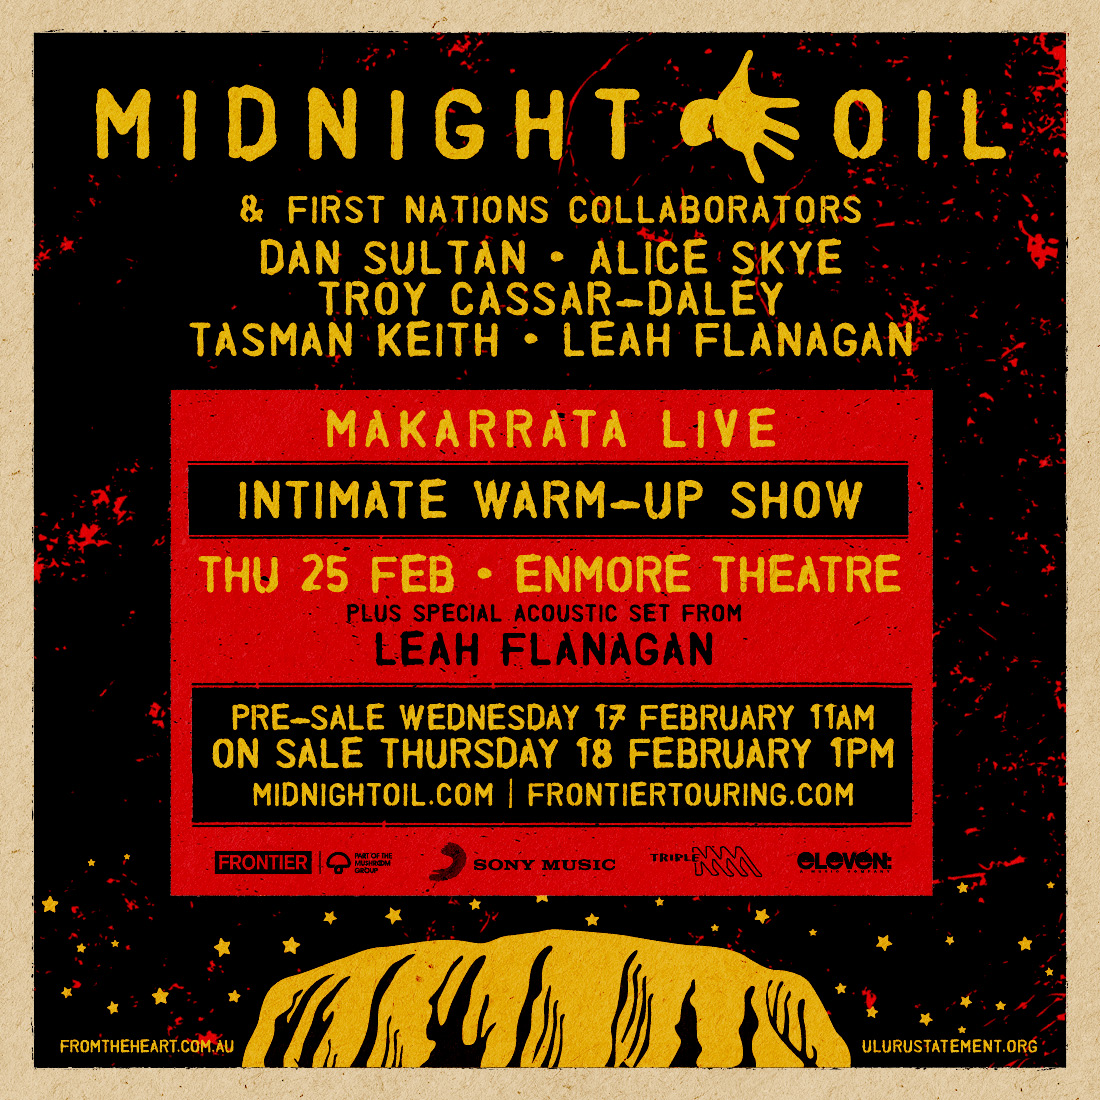 Midnight Oil to play 'Makarrata Live' intimate warm-up show on 25 Feb at Sydney's Enmore Theatre with First Nations collaborators